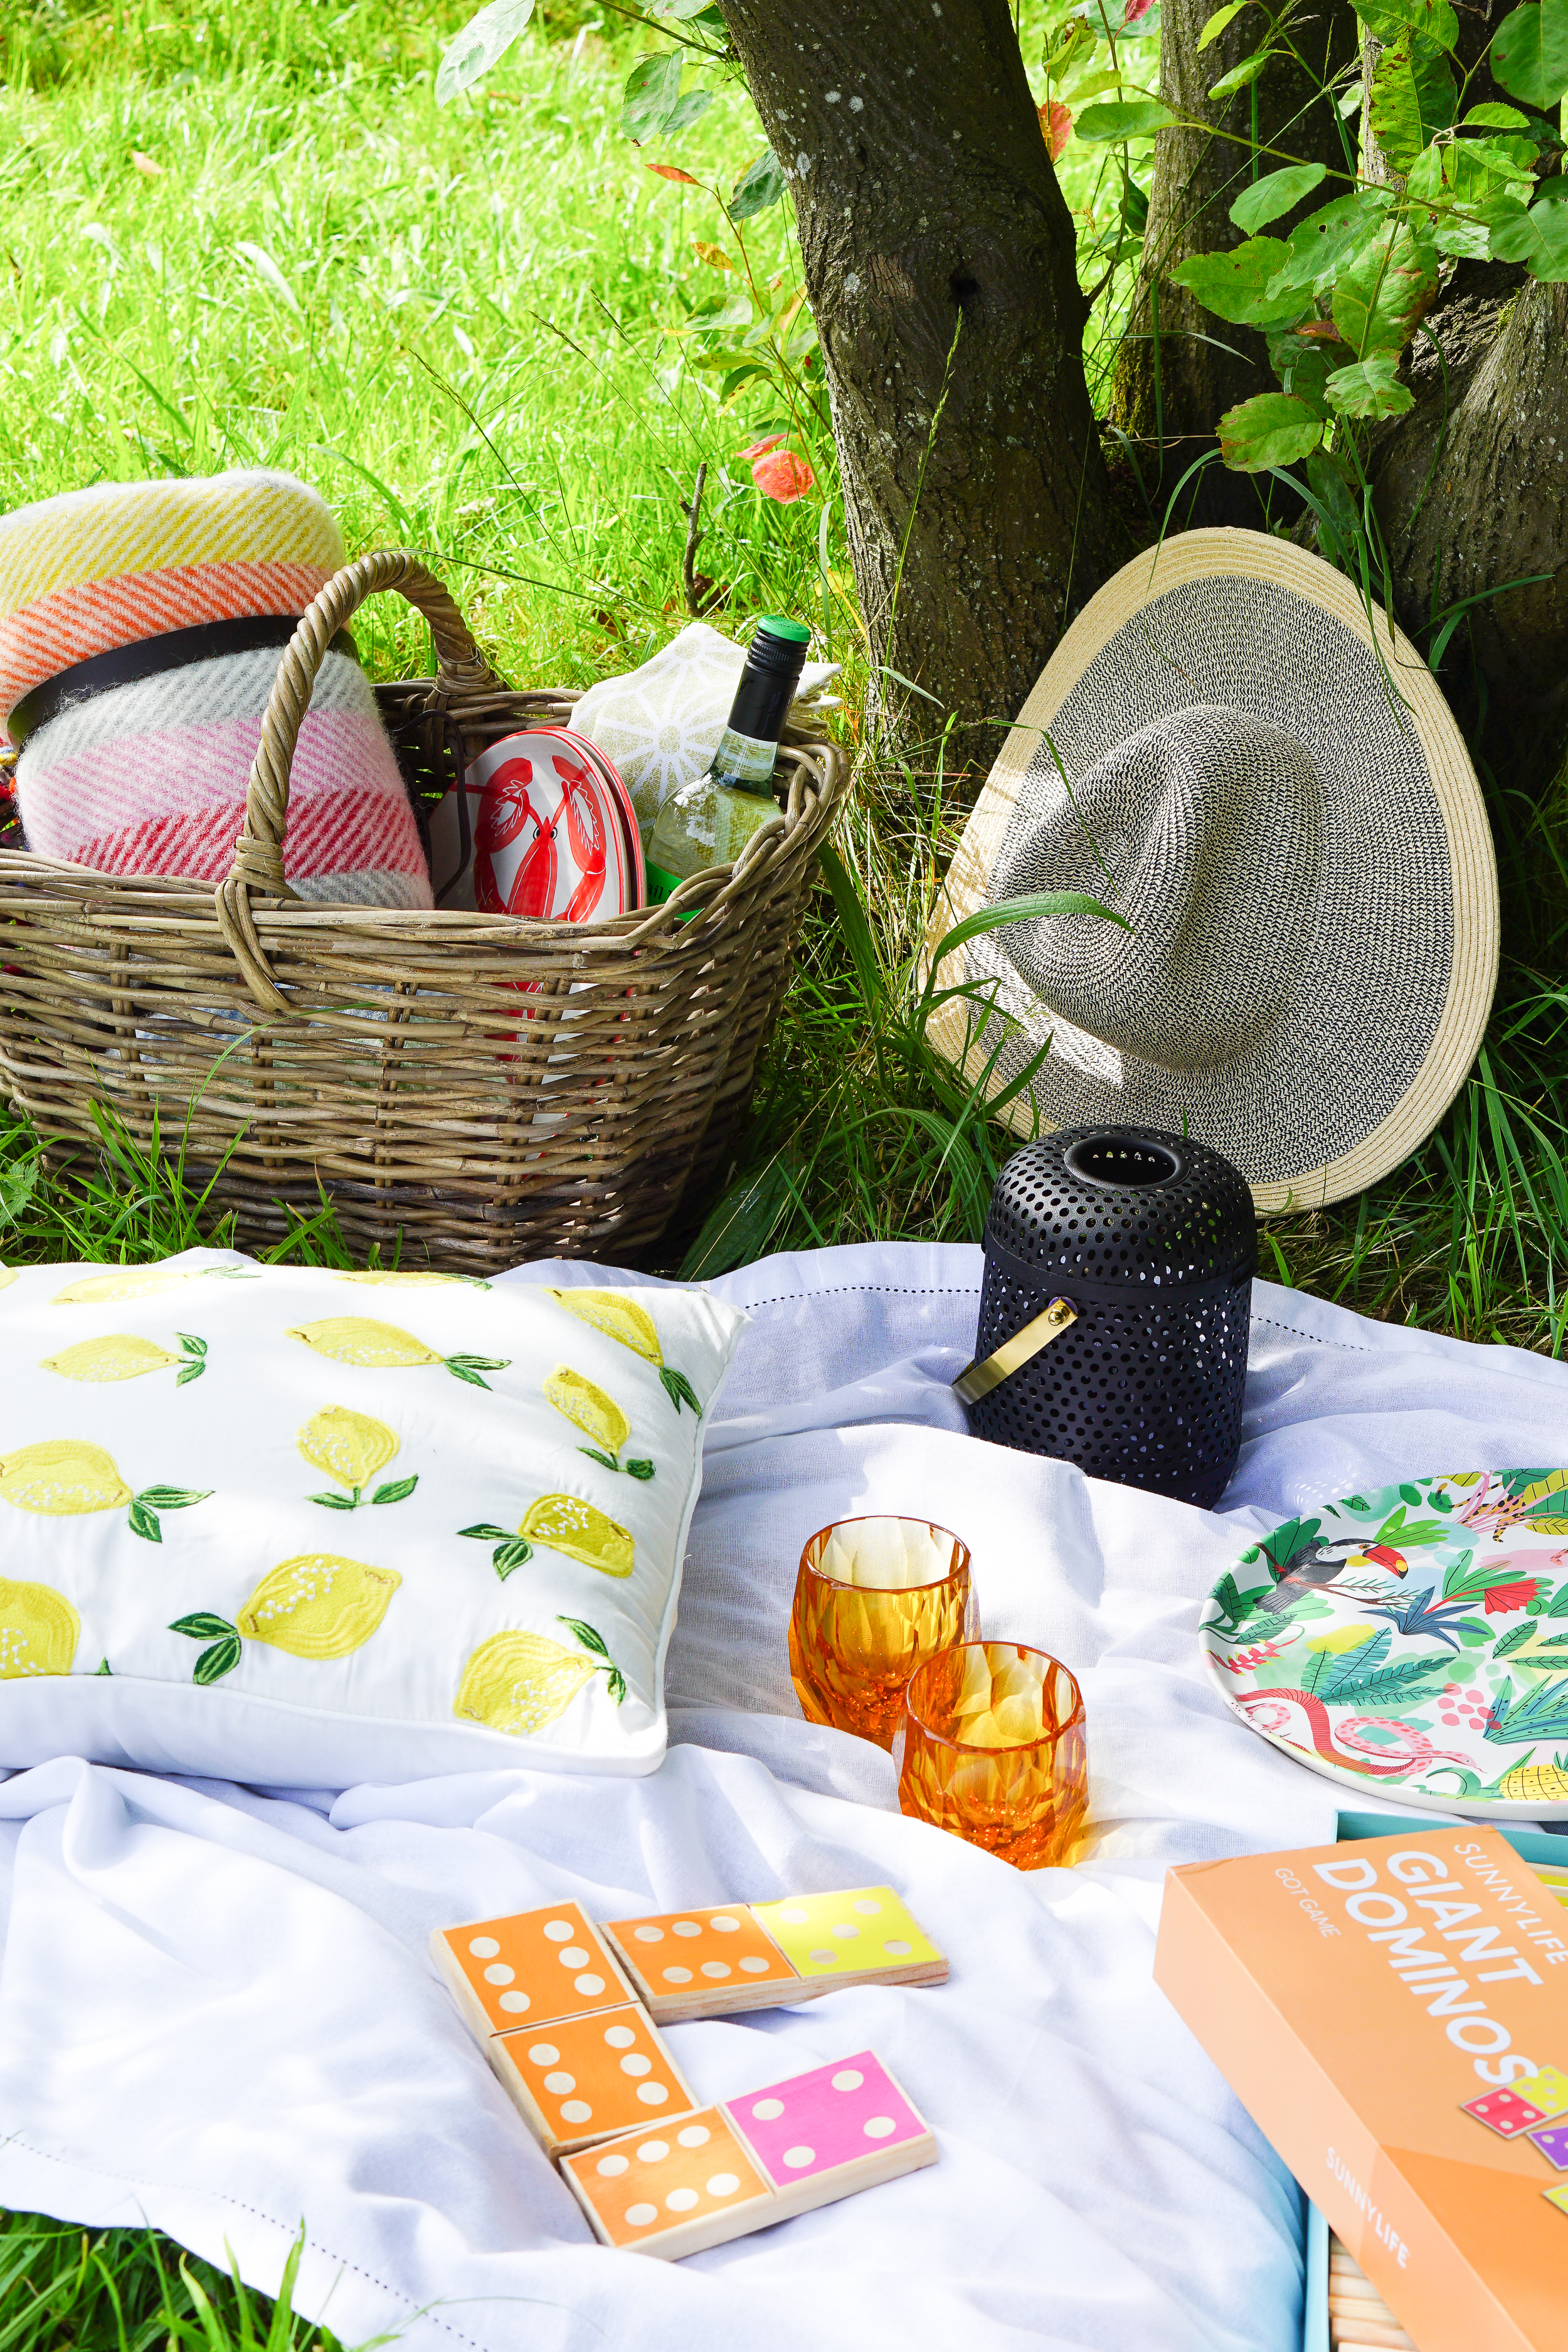 Celebrate the last weeks of summer with a picnic